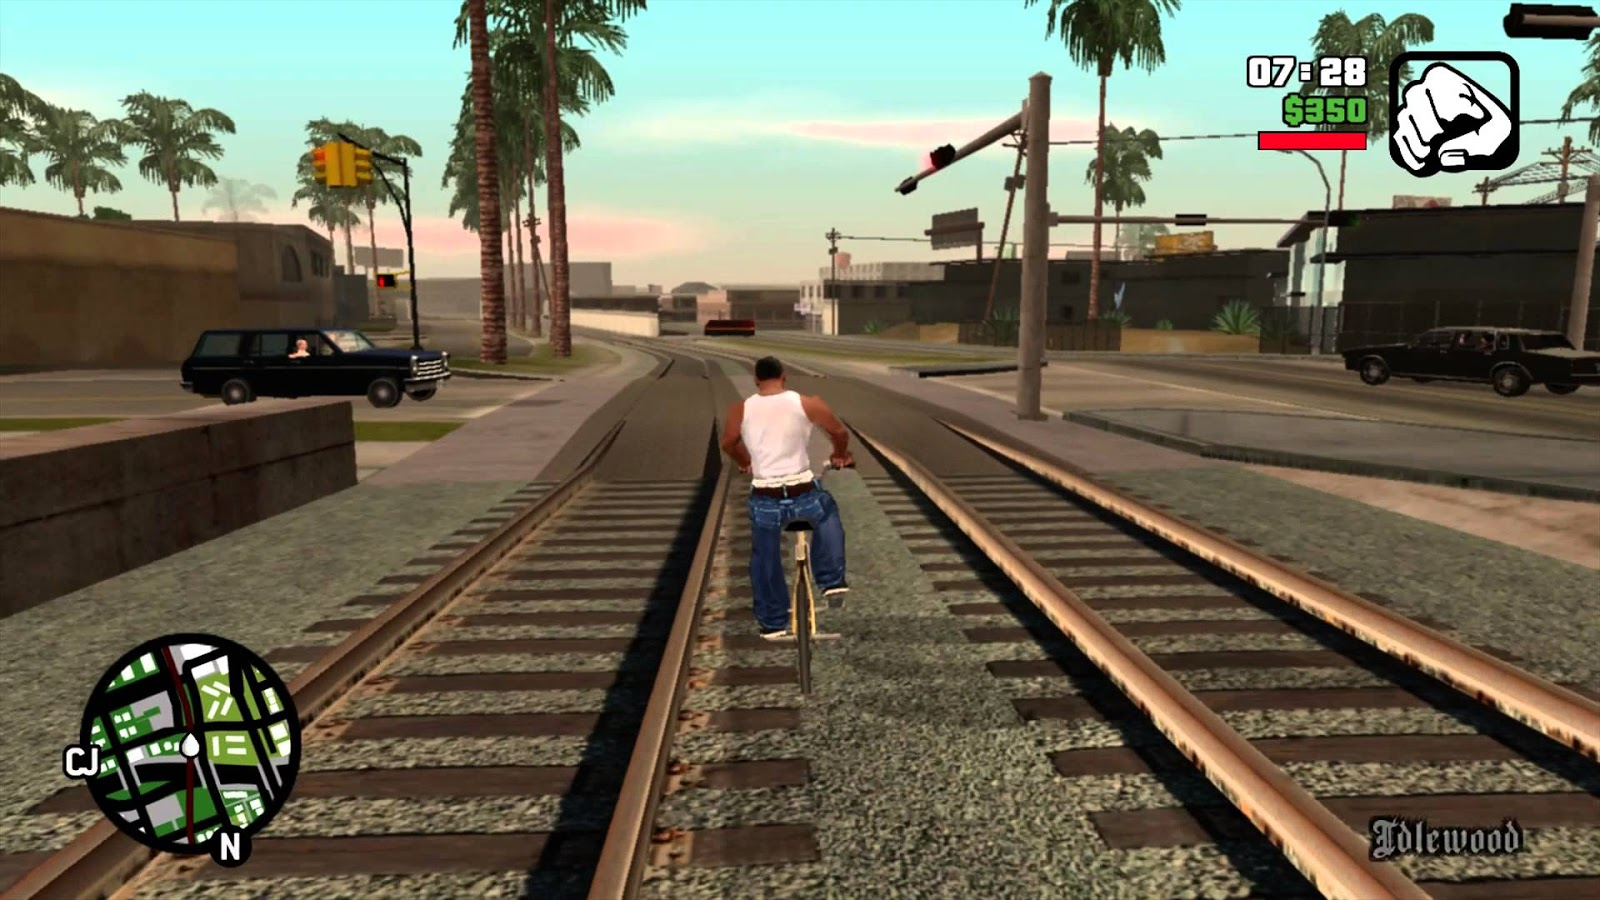 gta san andreas free for android 300mb apktaj android apps